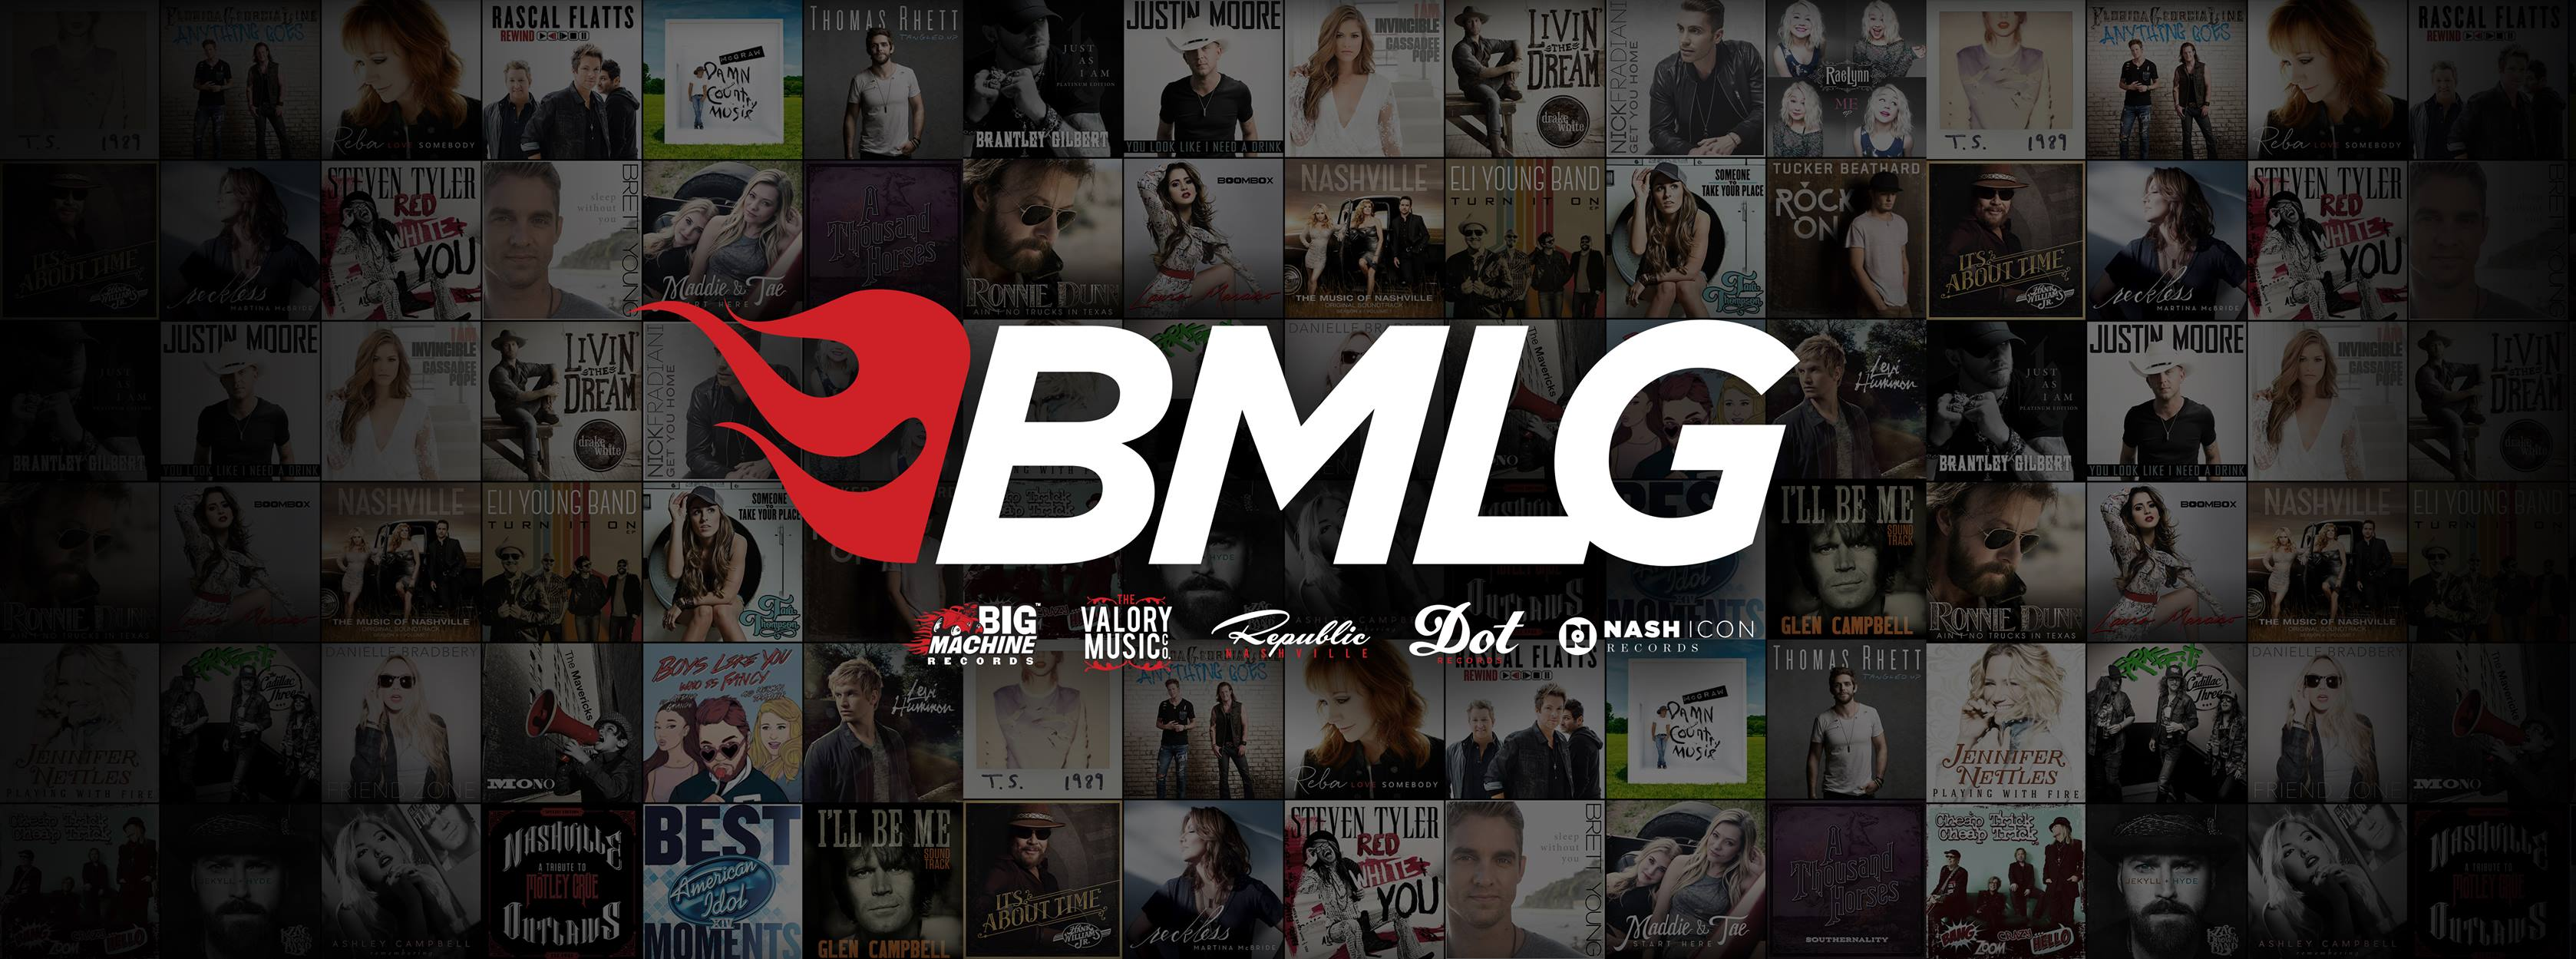 big machine records artists